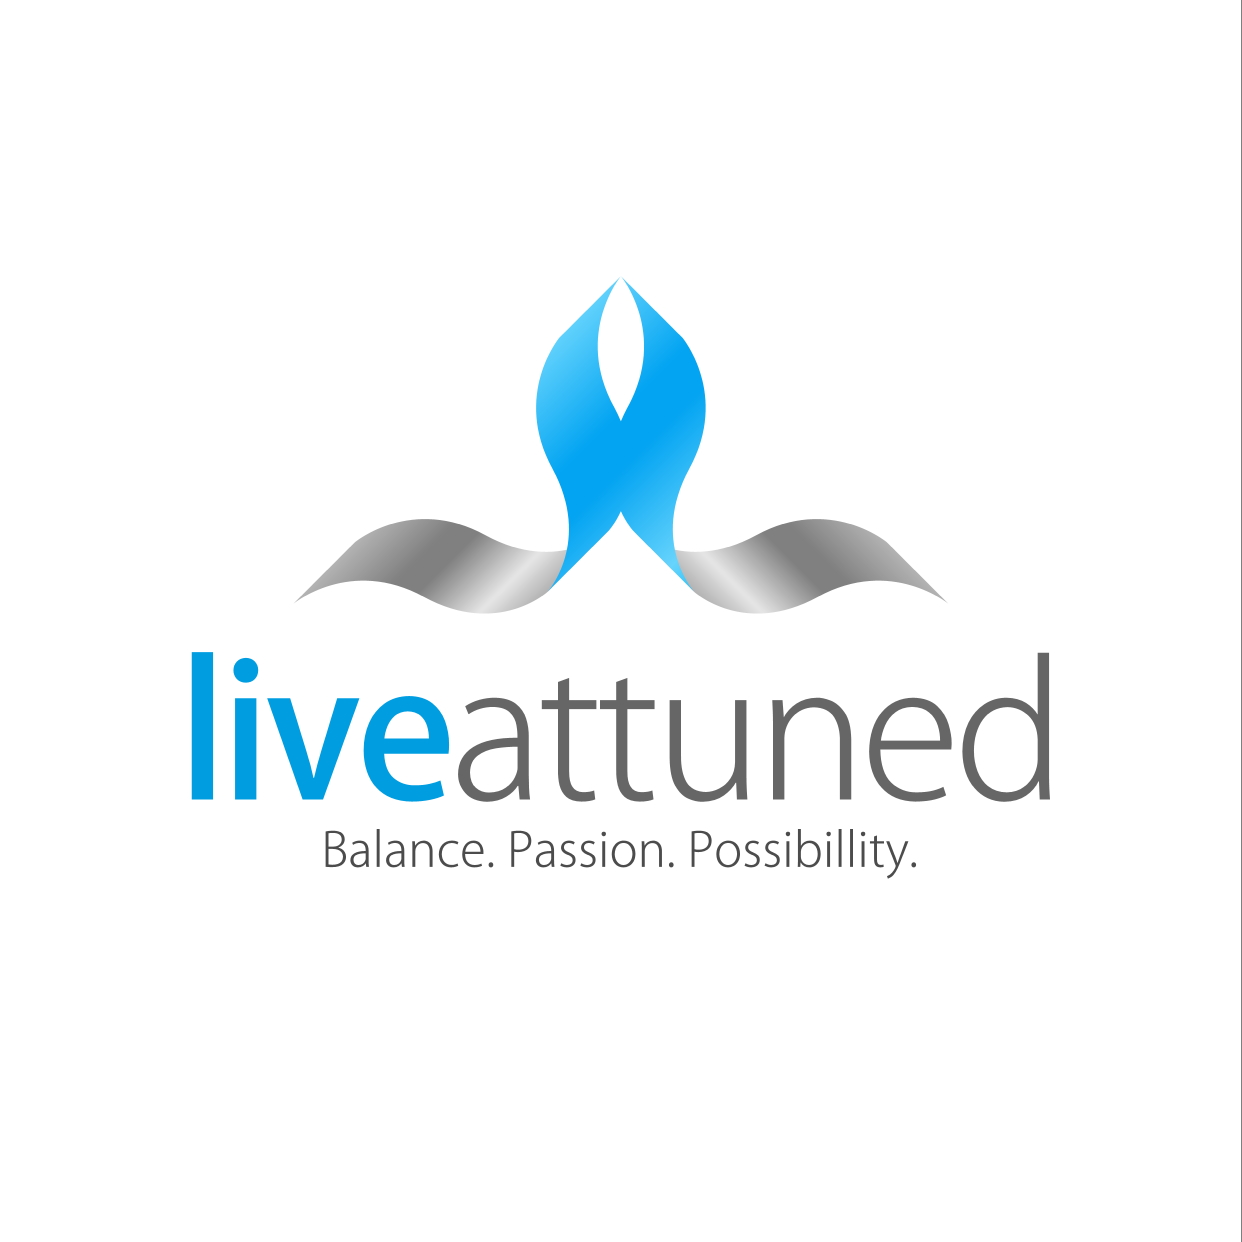 Logo Design by ENNO77 - Entry No. 146 in the Logo Design Contest New Logo Design for Live Attuned.